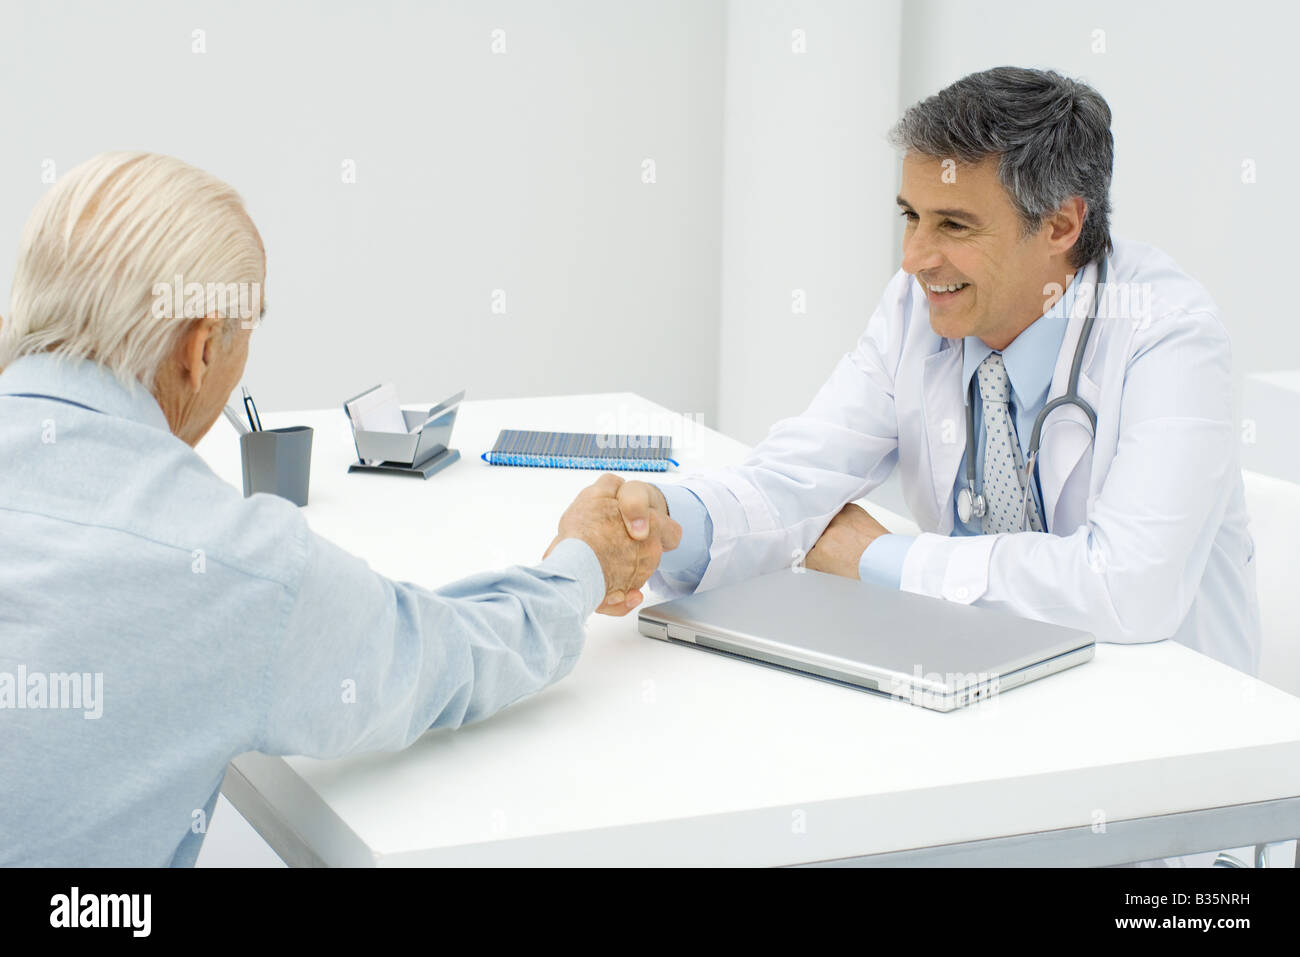 Doctor shaking hands with patient - Stock Image